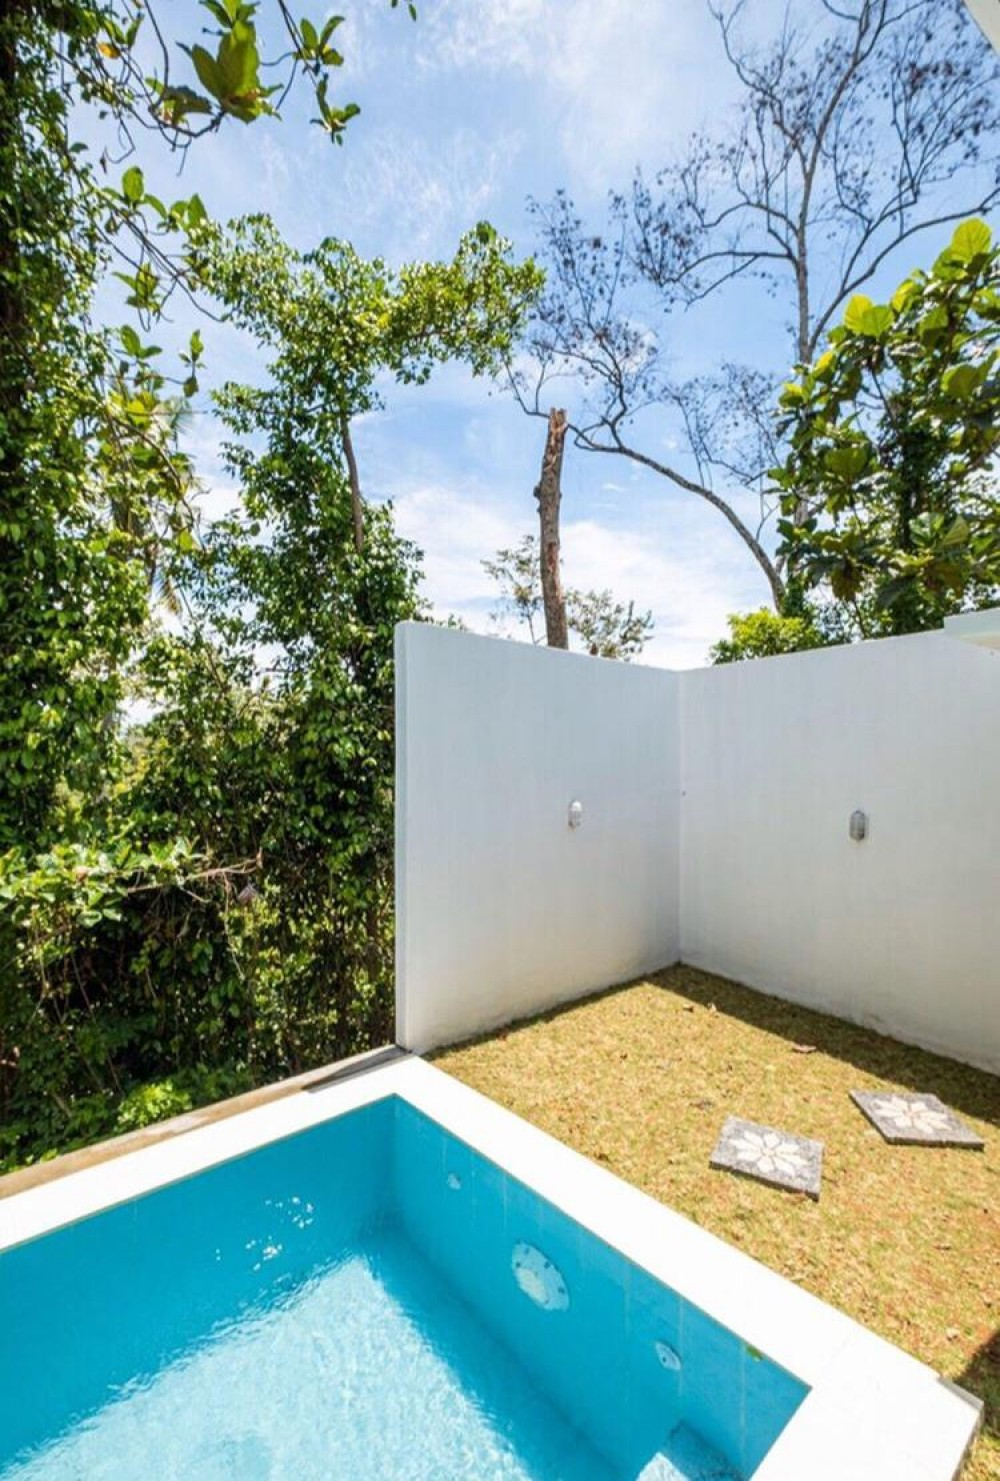 Reduced Price Minimalist 2 Bedroom Villa in Tabanan for Sale